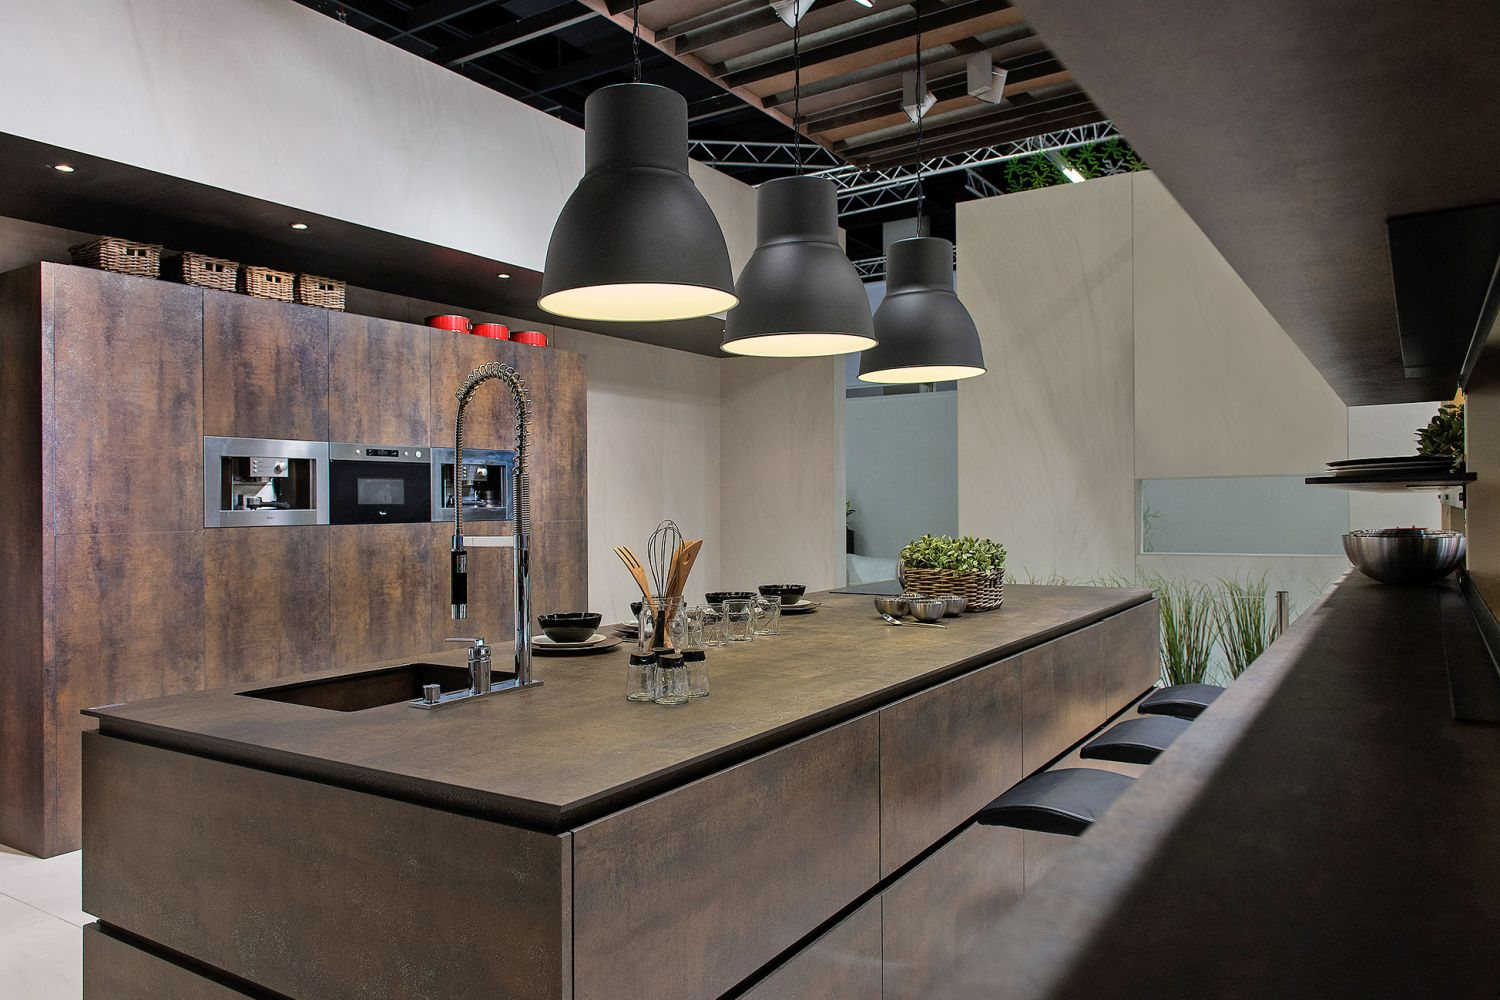 Cuisine style design industriel id al pour loft ou grande for Architecture et decoration